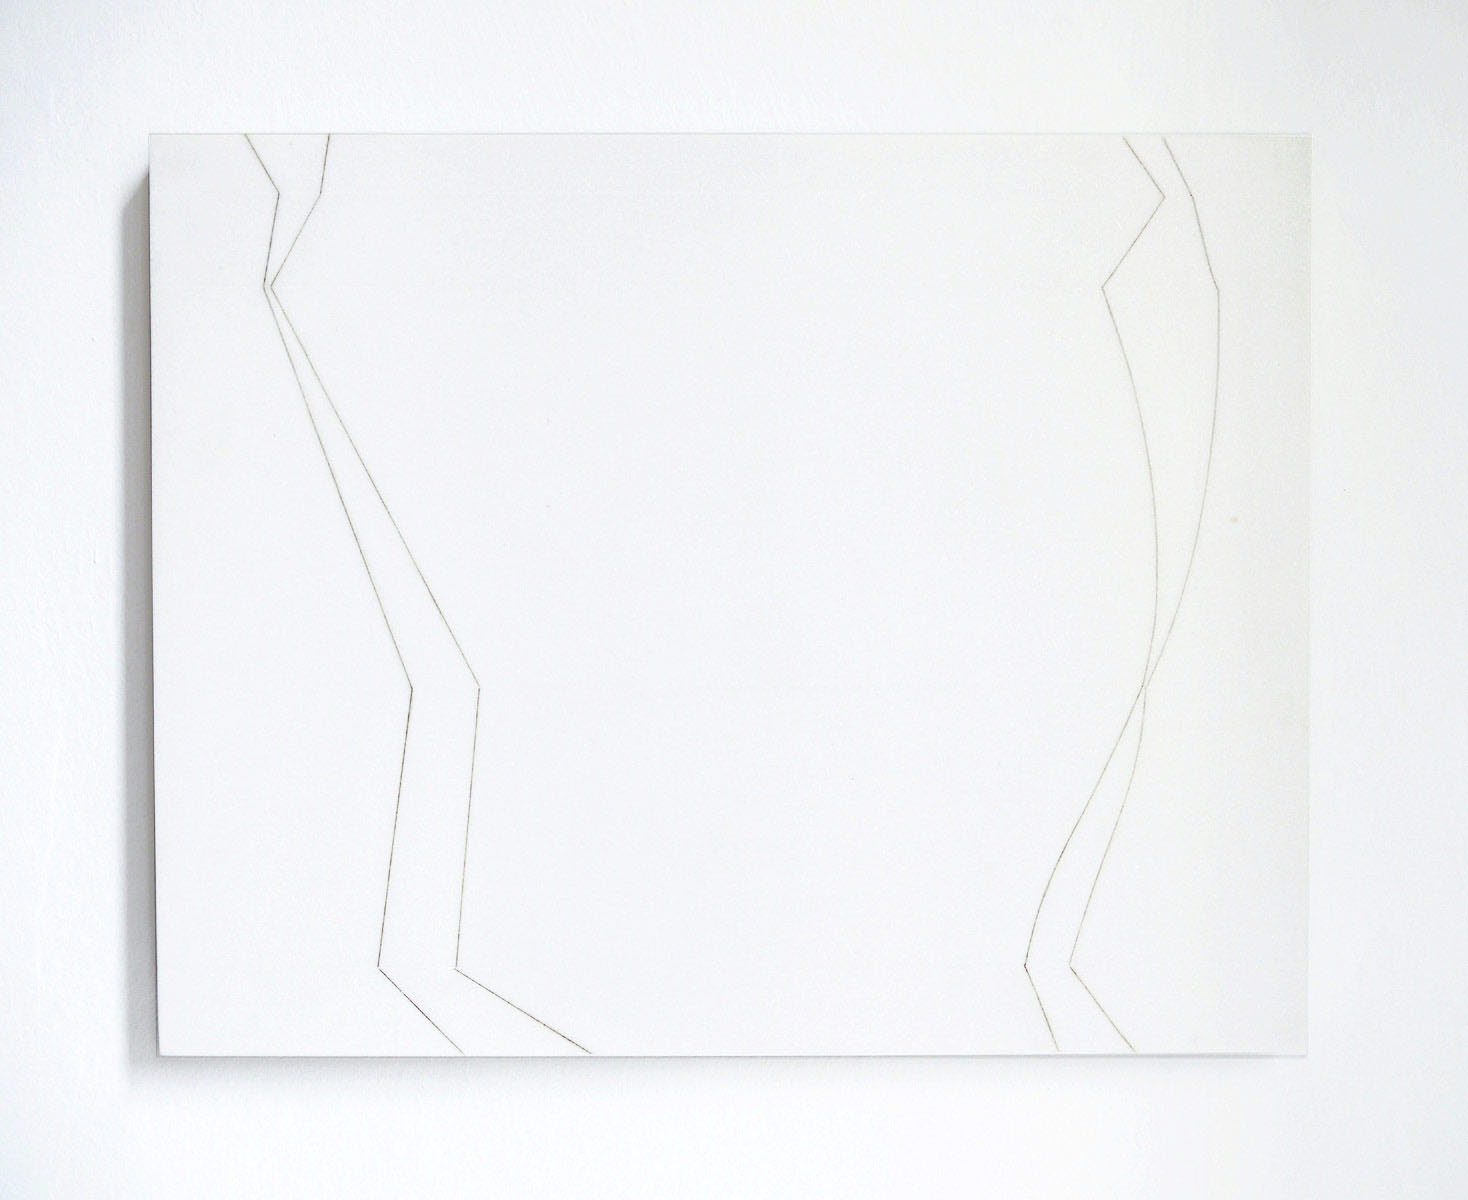 Antonio Catelani - canone variabile 1989 silverpoint drowing on withe marble slab cm 40x50x2